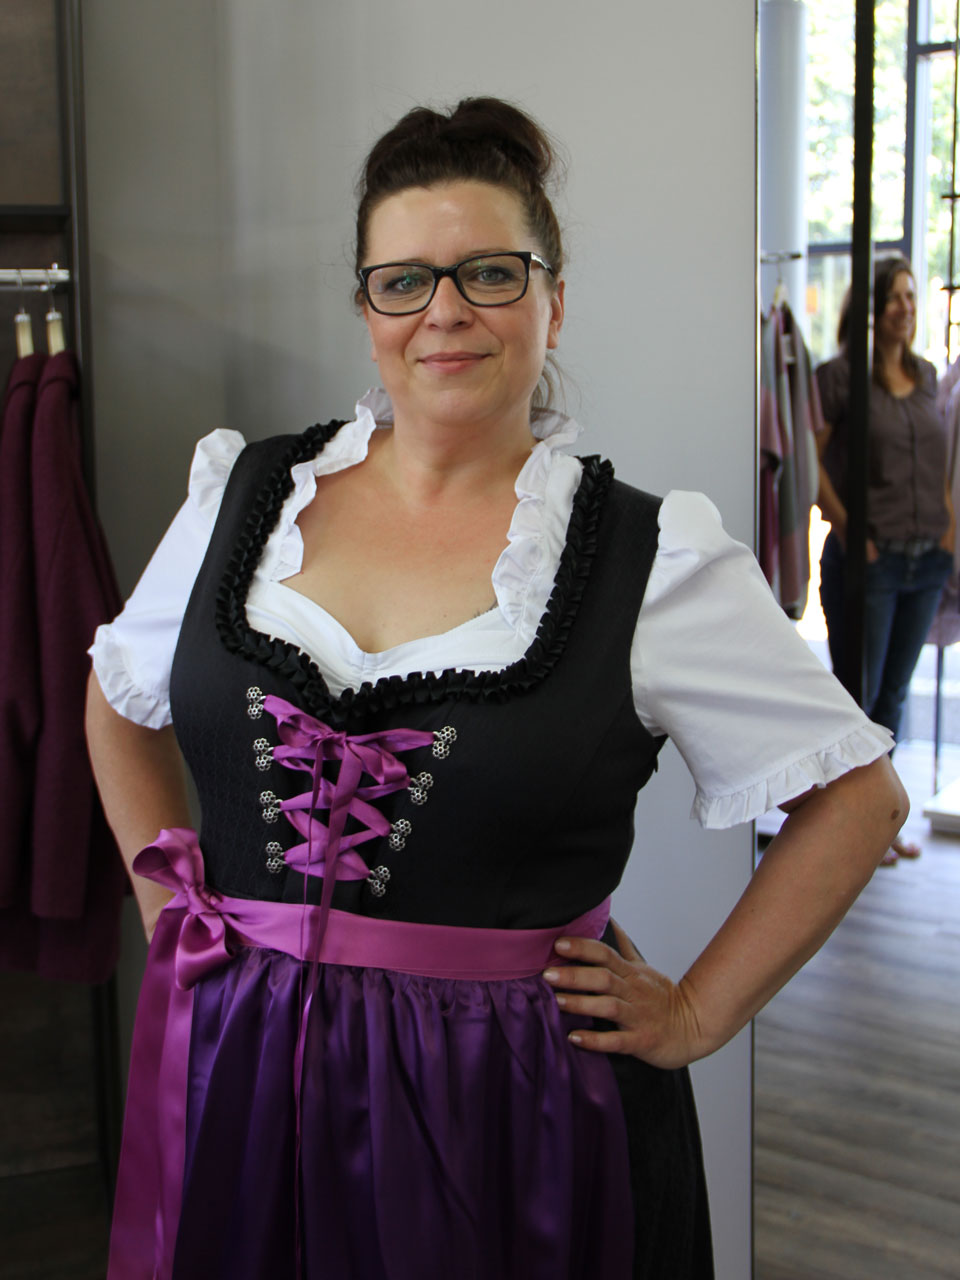 heike in unserem lieblings dirndl mode 58. Black Bedroom Furniture Sets. Home Design Ideas